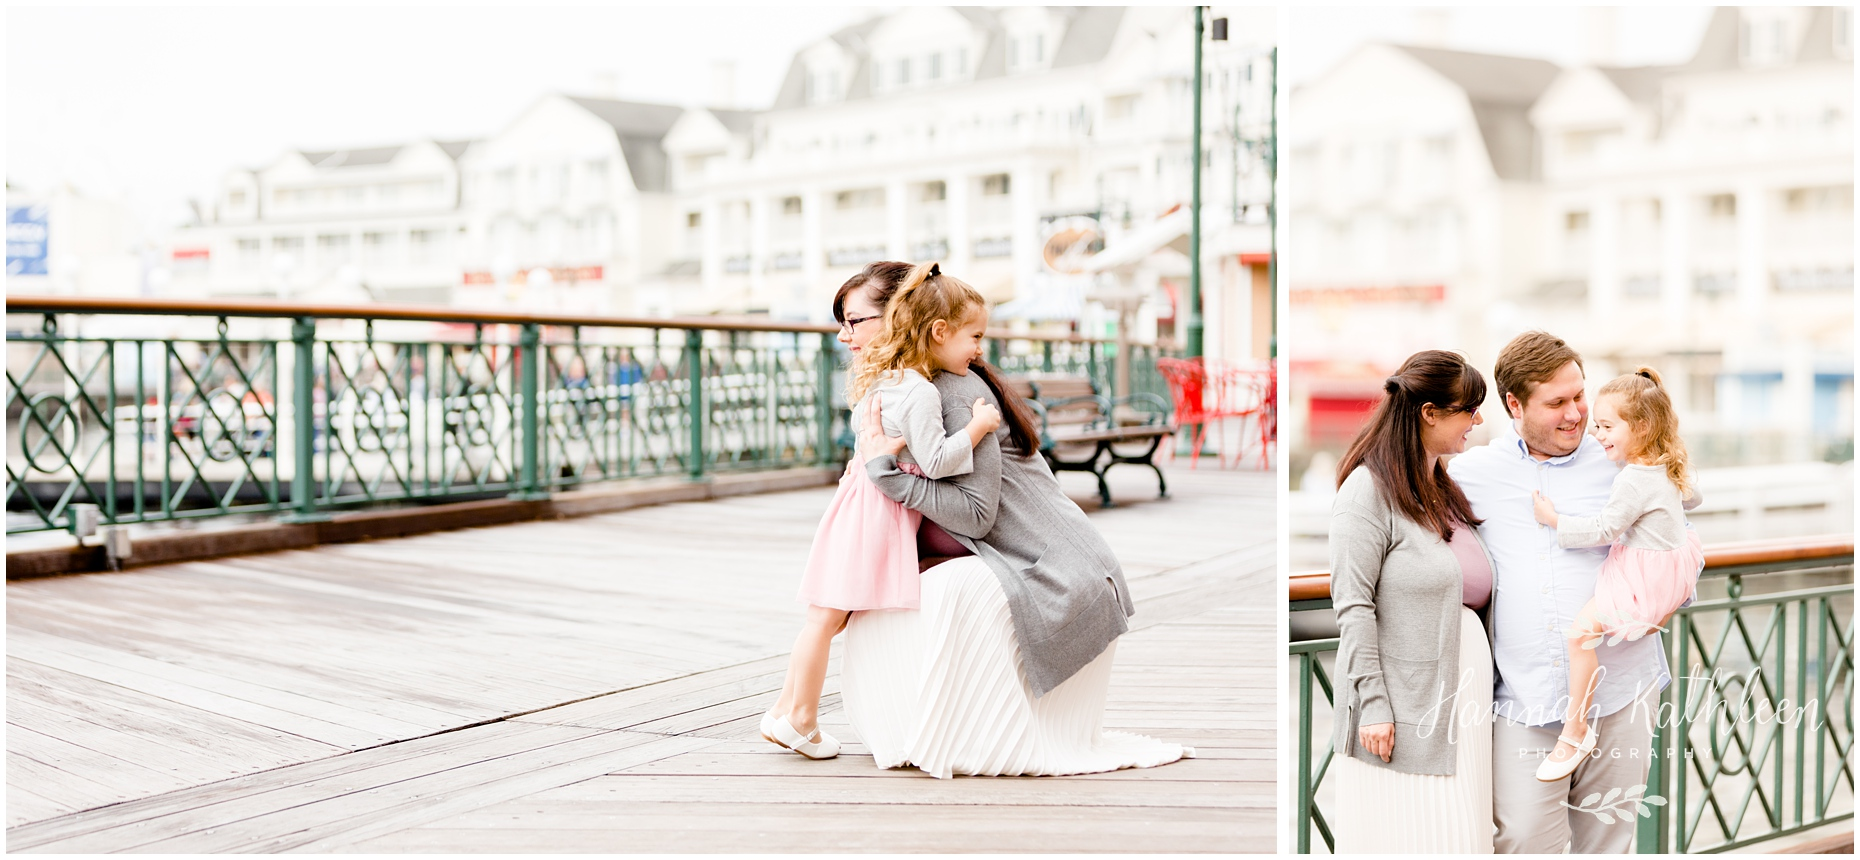 Harrington_Disney's_Boardwalk_Resort_Family_Photographer